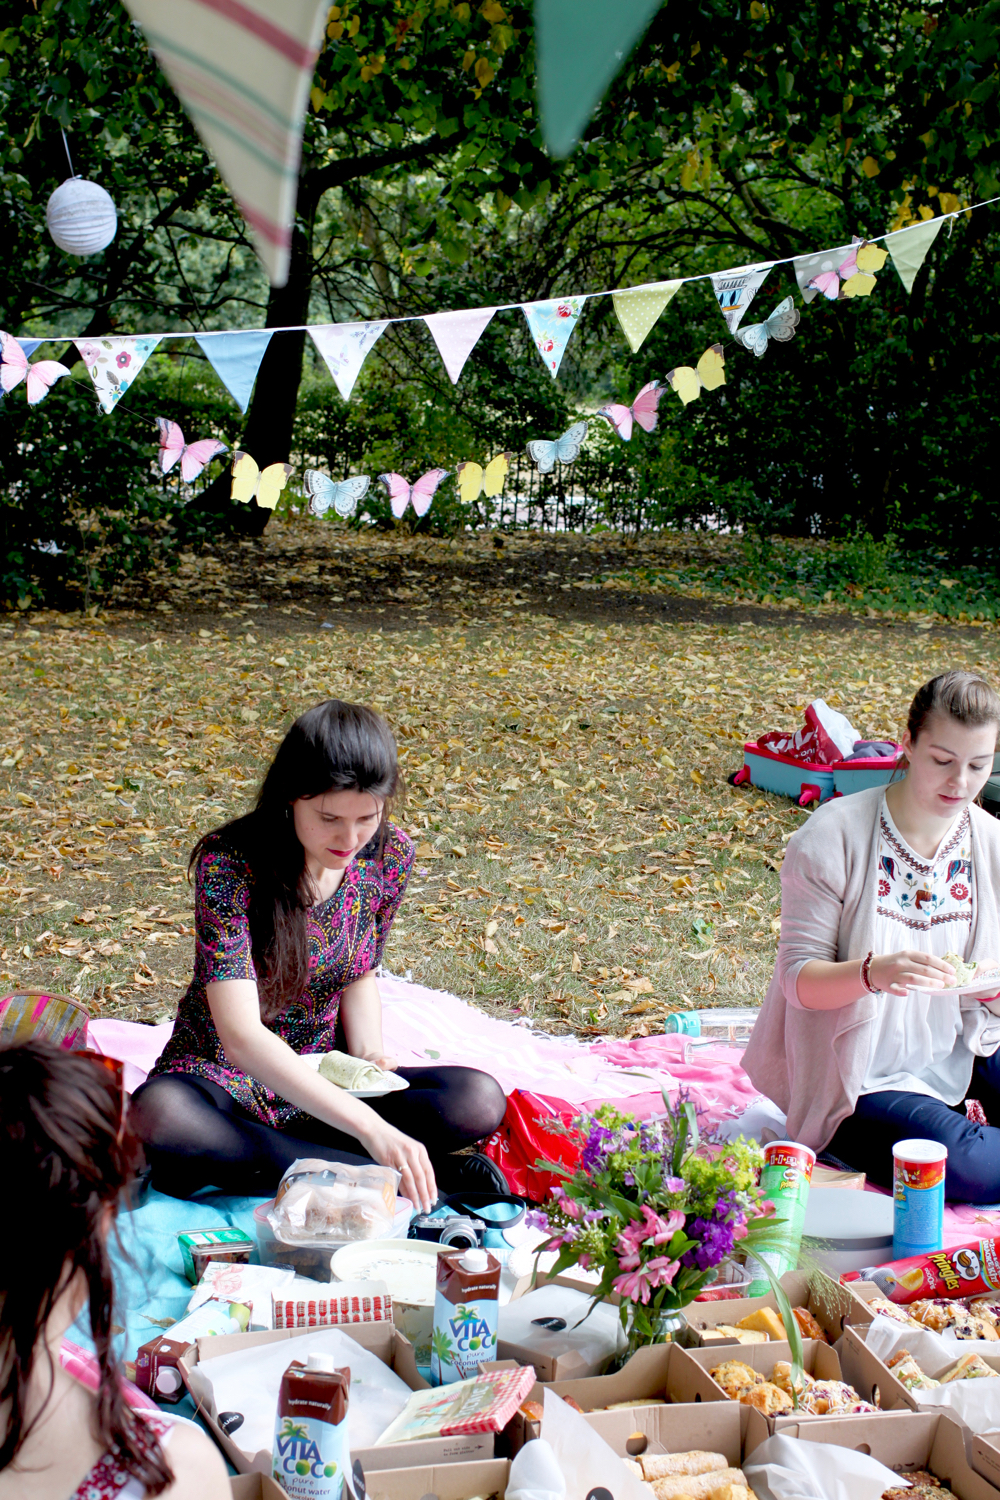 The Most Instagram-Worthy Picnic There Ever Was | #BloggerPitP | www.hannahemilylane.com